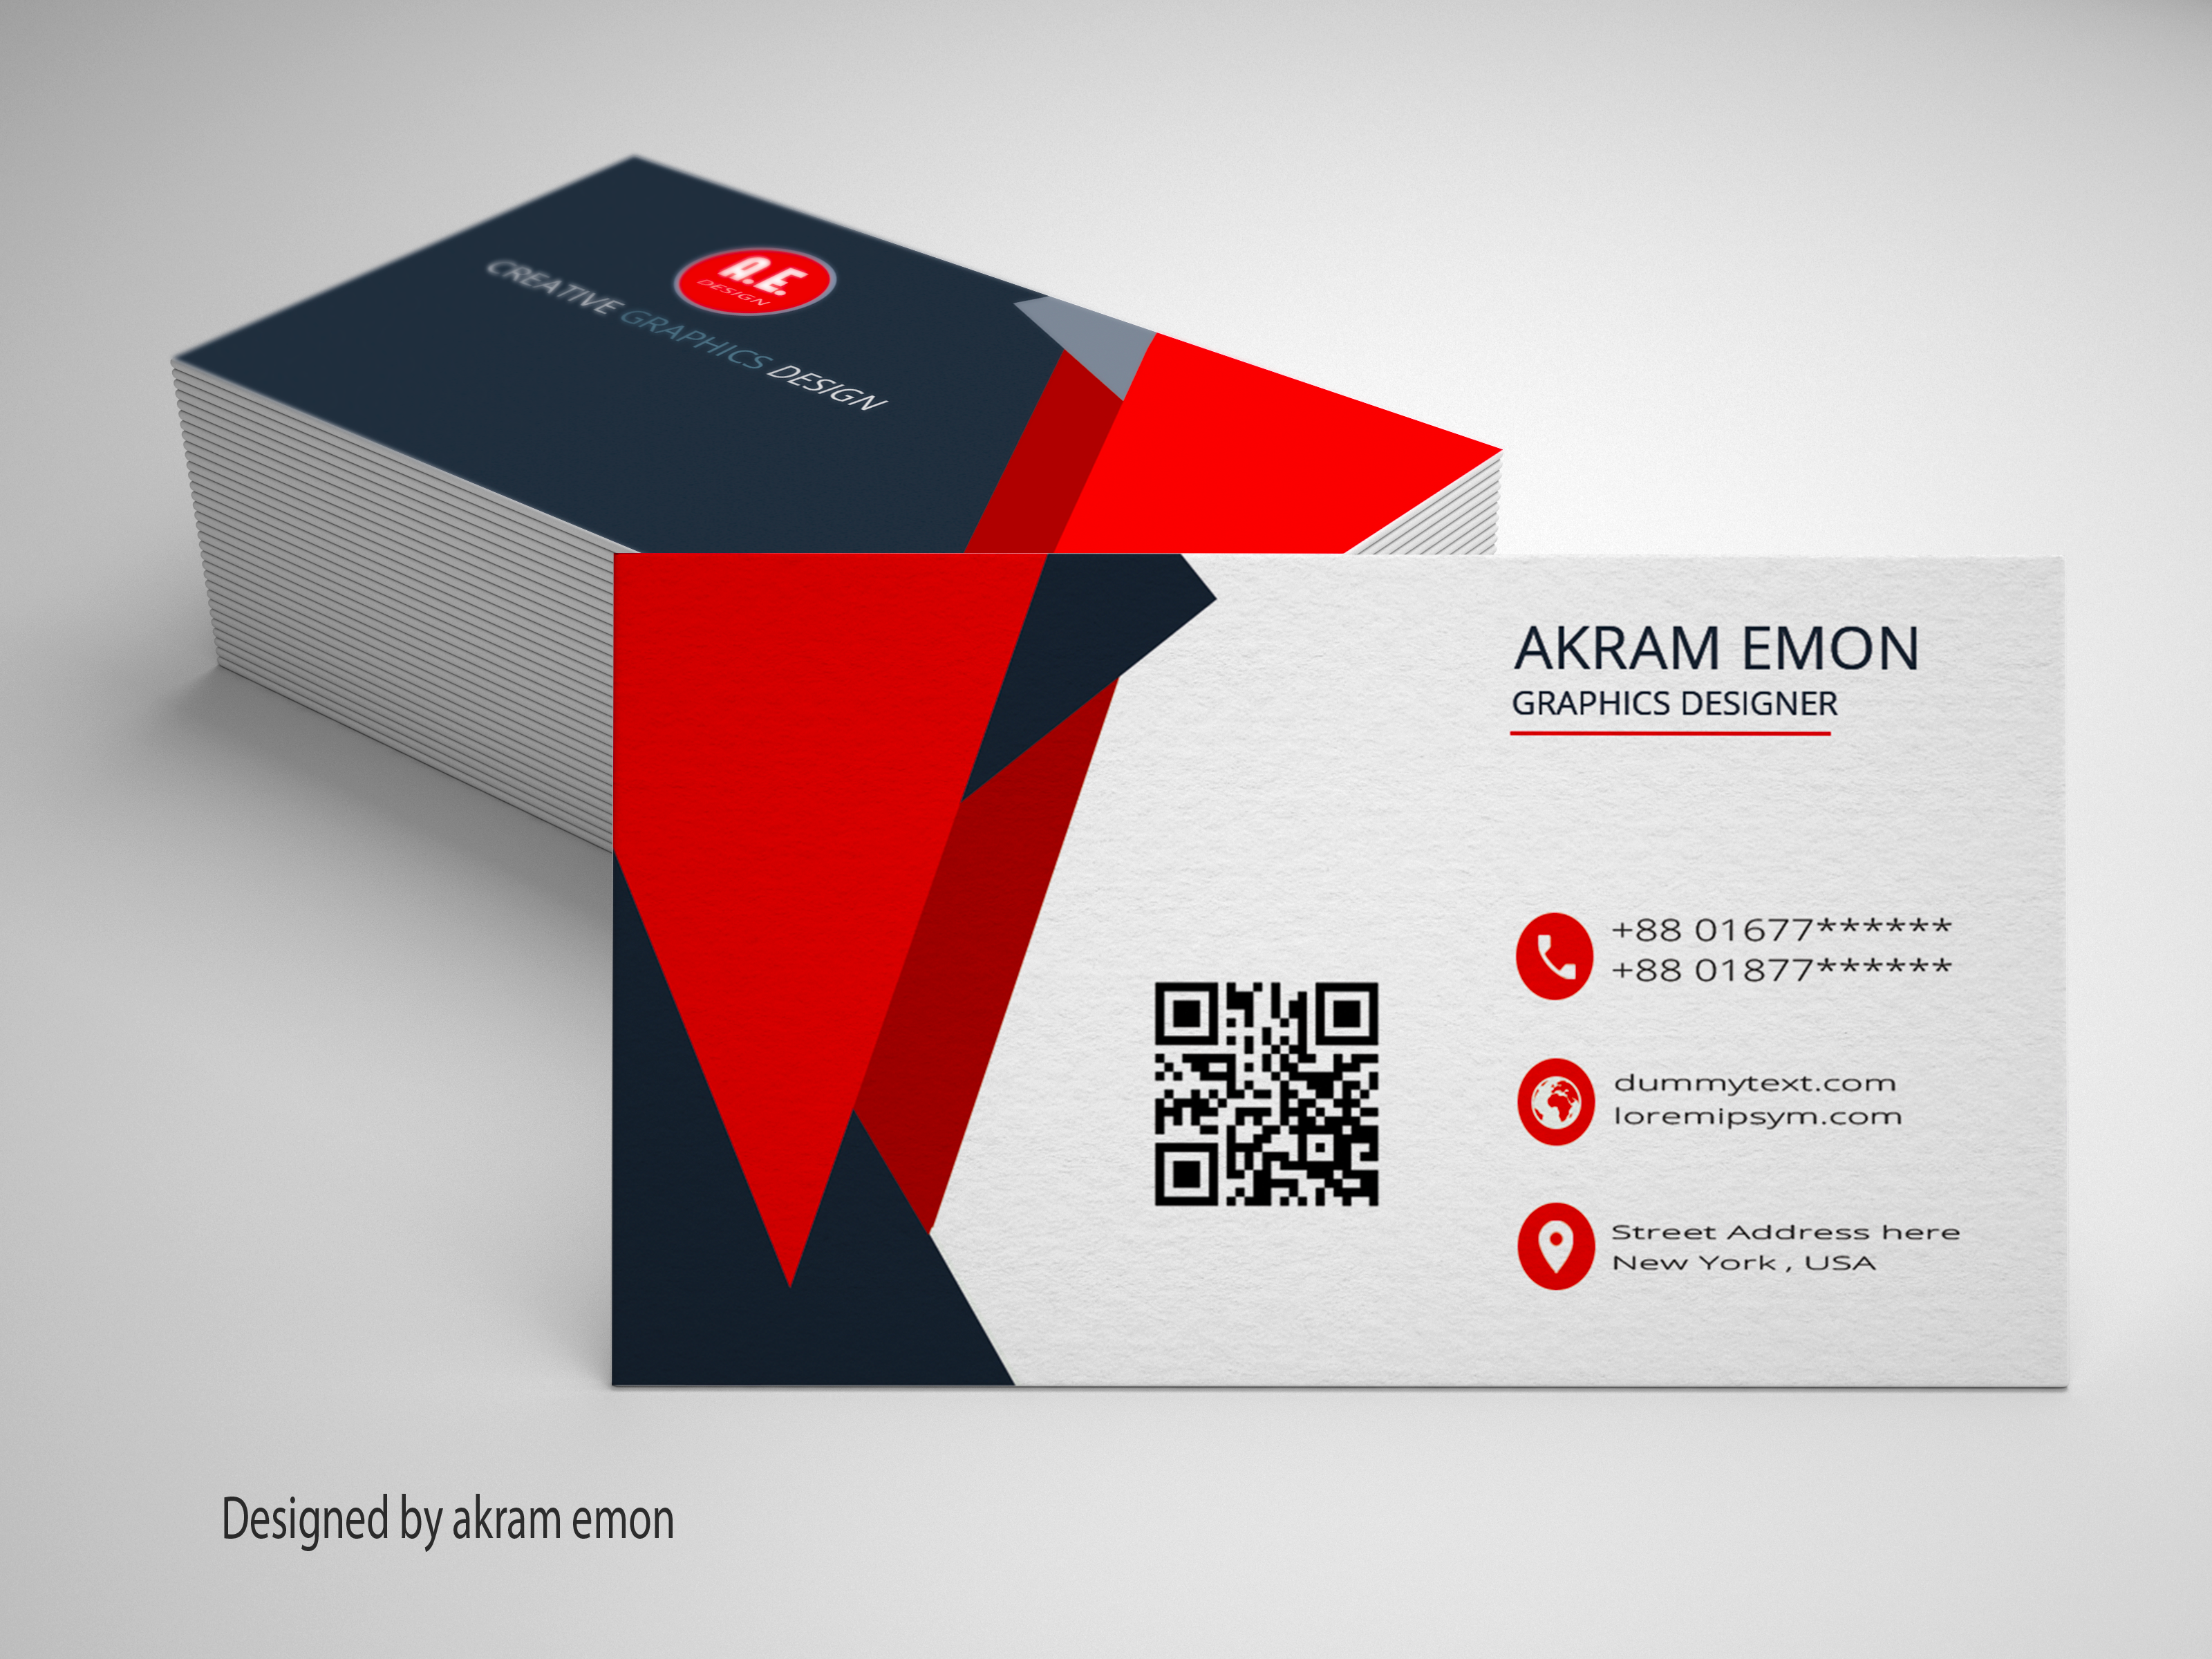 Personal Business Card Design At Fiverr Akramemon58 Personal Business Cards Professional Business Cards Cards